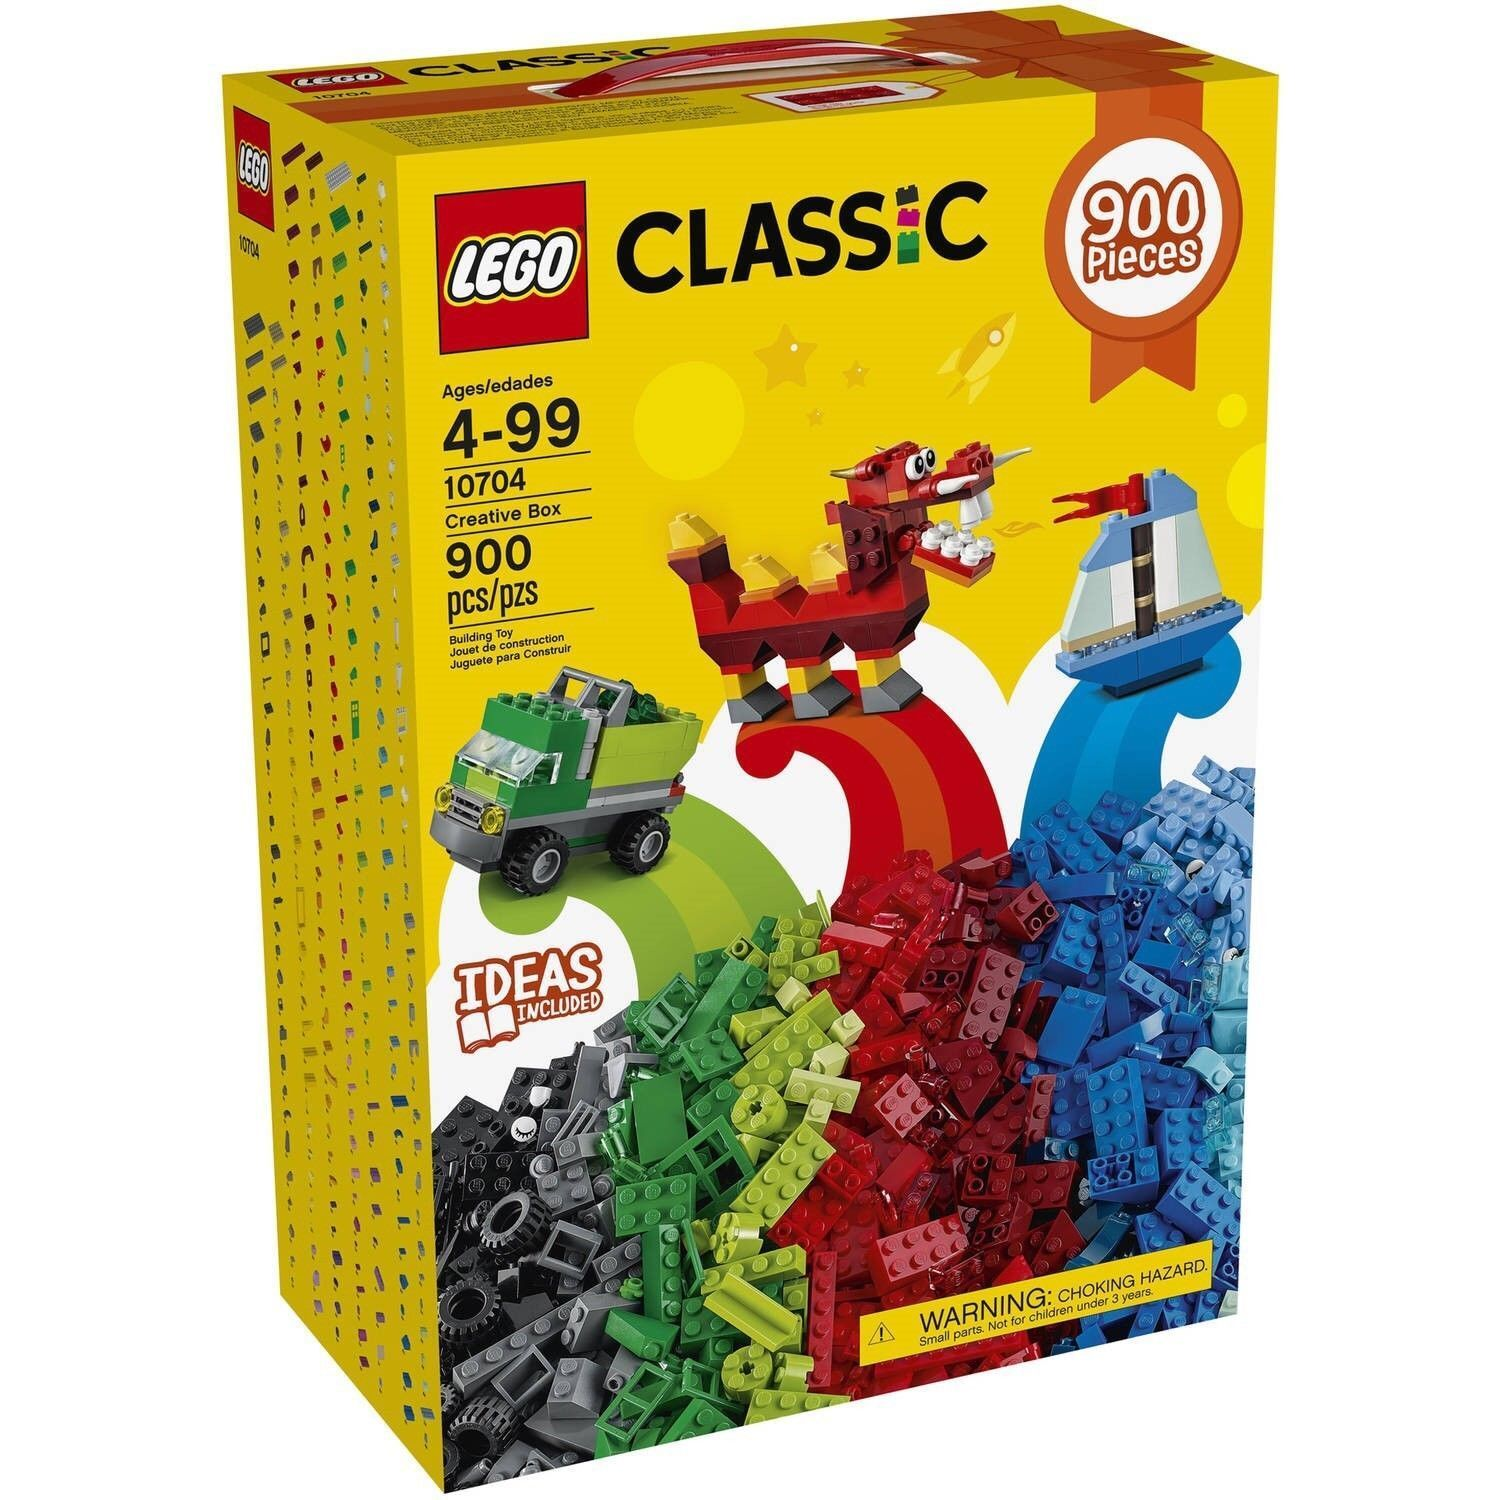 LEGO CLASSIC CREATIVE BOX 10704 NEW SEALED 900 PIECES HAVE 6 SETS AVAILABLE